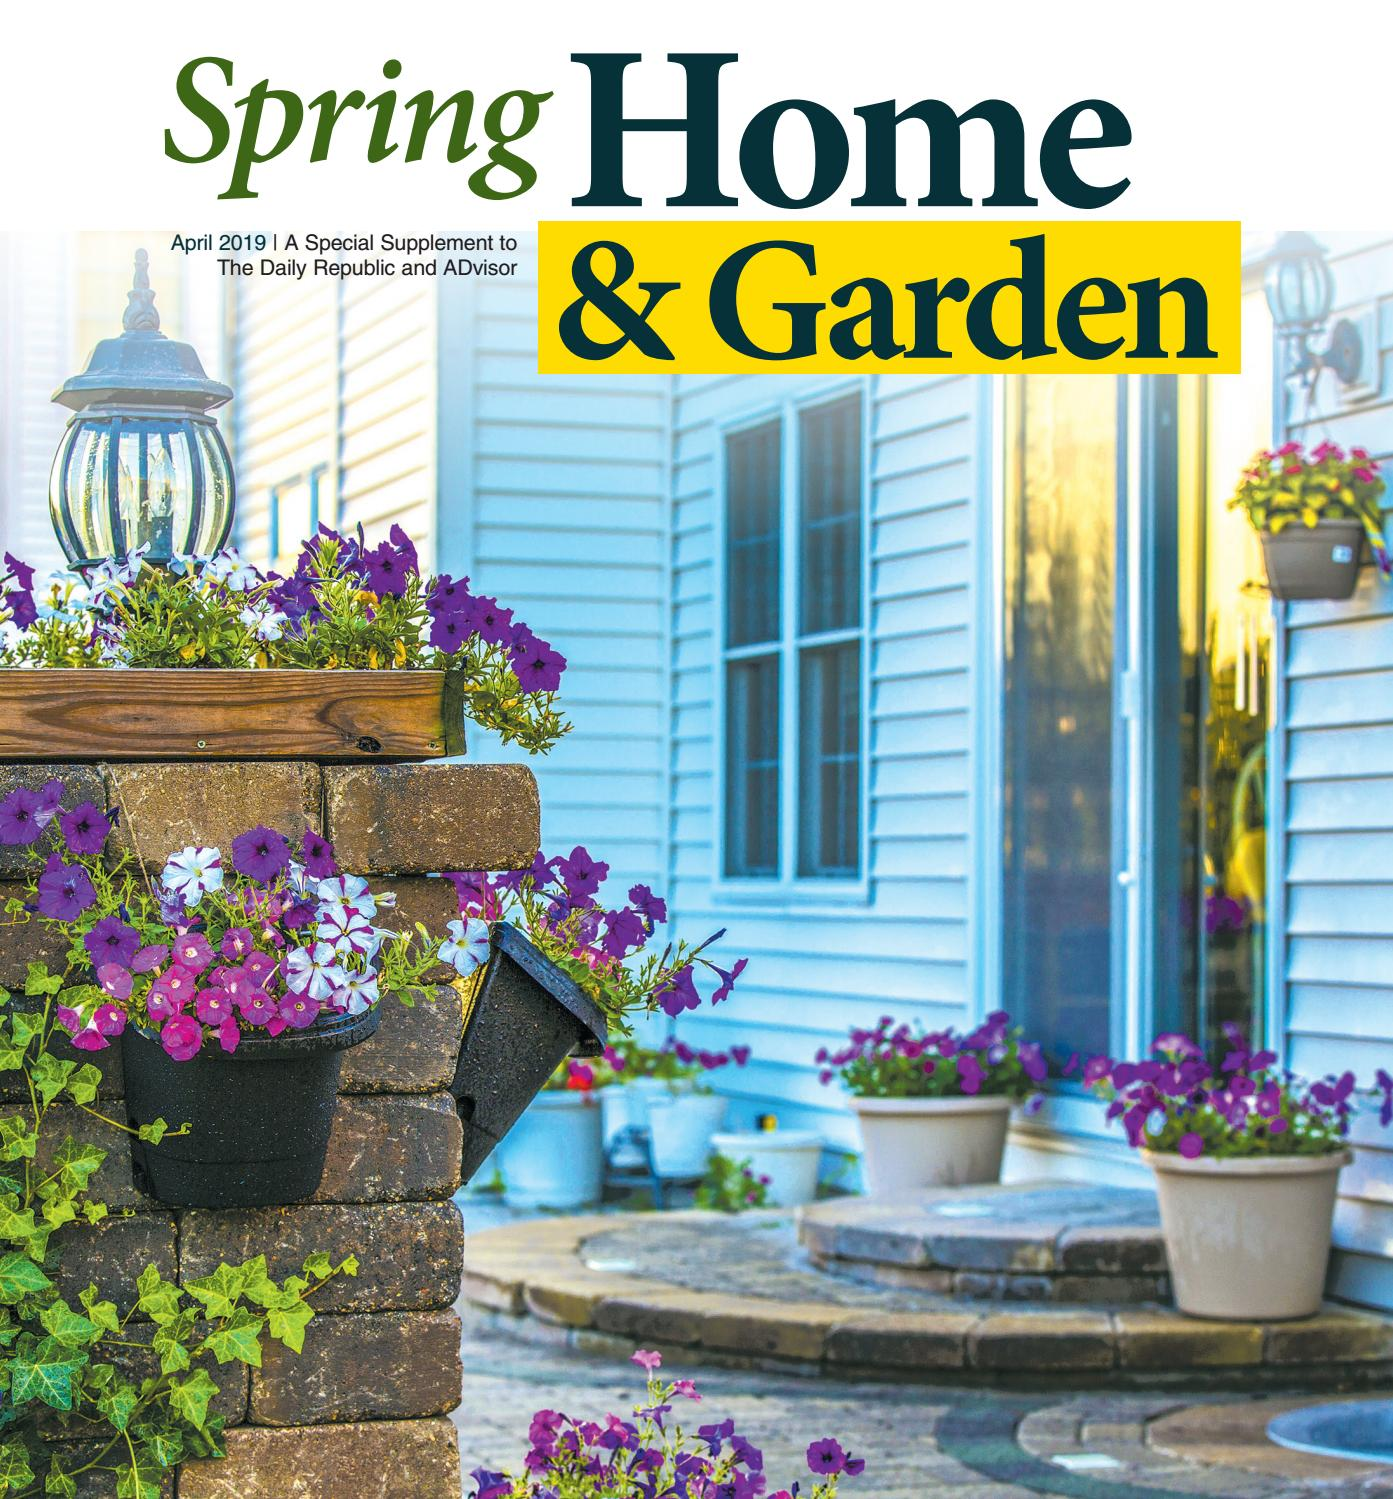 Home Garden Spring 2019 By The Daily Republic Issuu